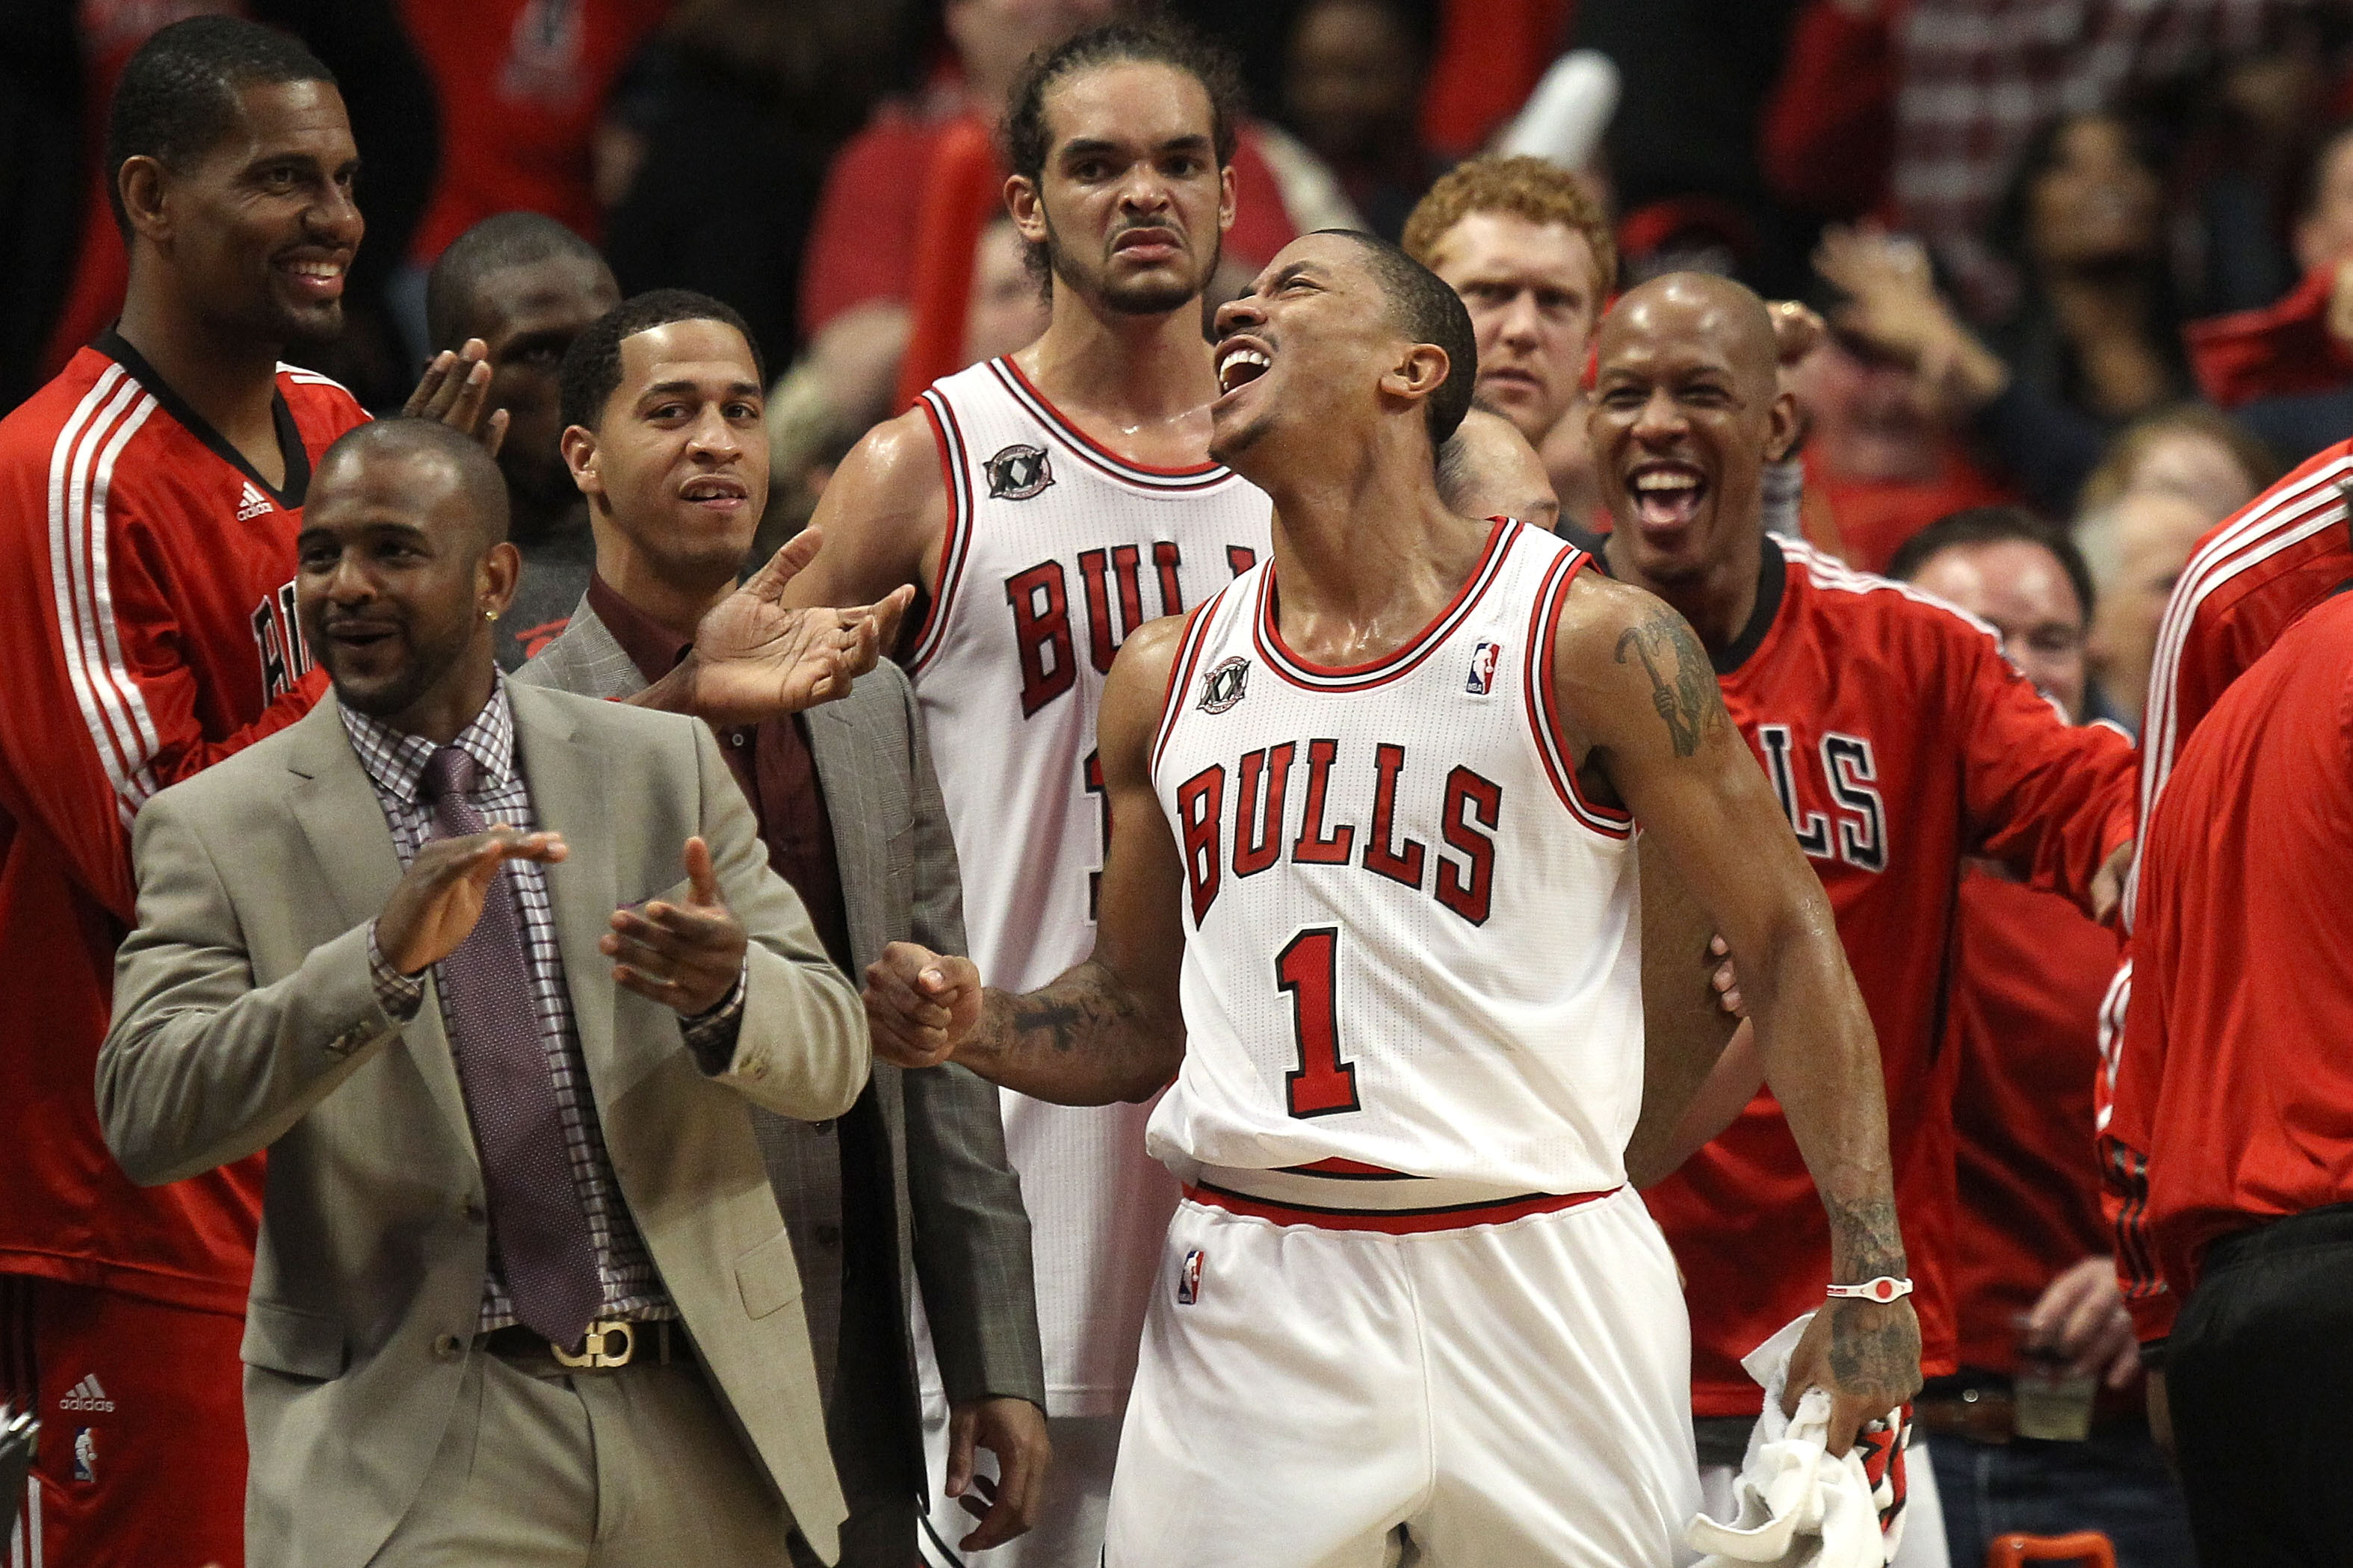 CHICAGO, IL - MAY 15:  (L-R) Kurt Thomas #40, John Lucas III, Joakim Noah #13, Derrick Rose #1 and Keith Bogans #6 of the Chicago Bulls celebrate late in the fourth quarter against the Miami Heat in Game One of the Eastern Conference Finals during the 201